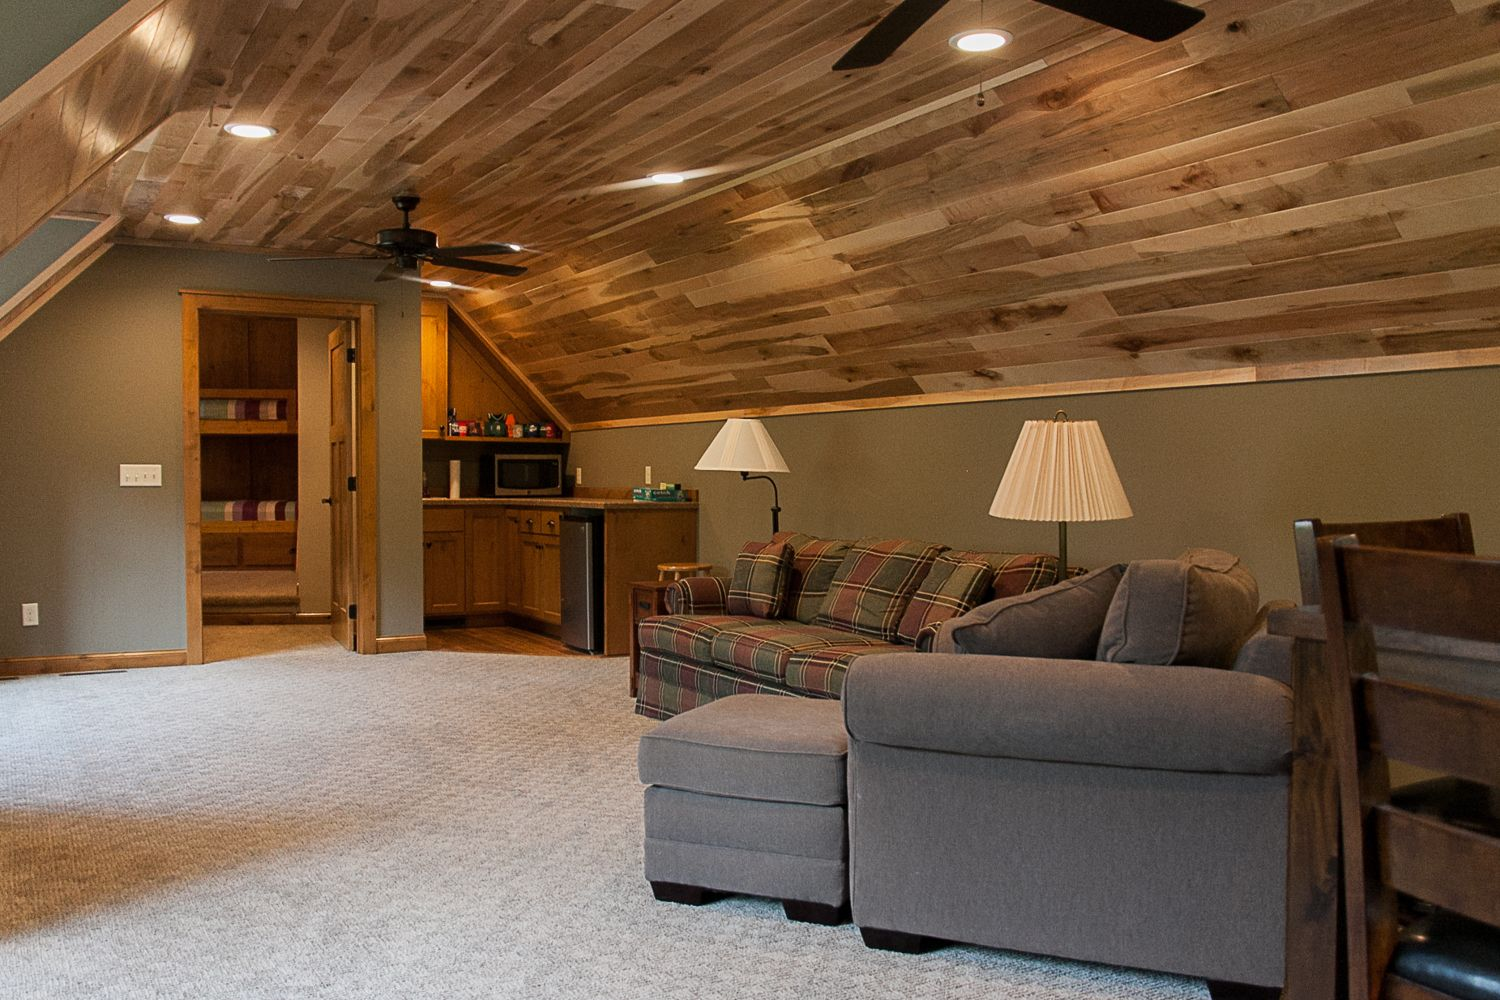 Hickory Ceiling Bonus Room Kid Room Above Garage In A Cabin Or Lake Home Lake Homes And